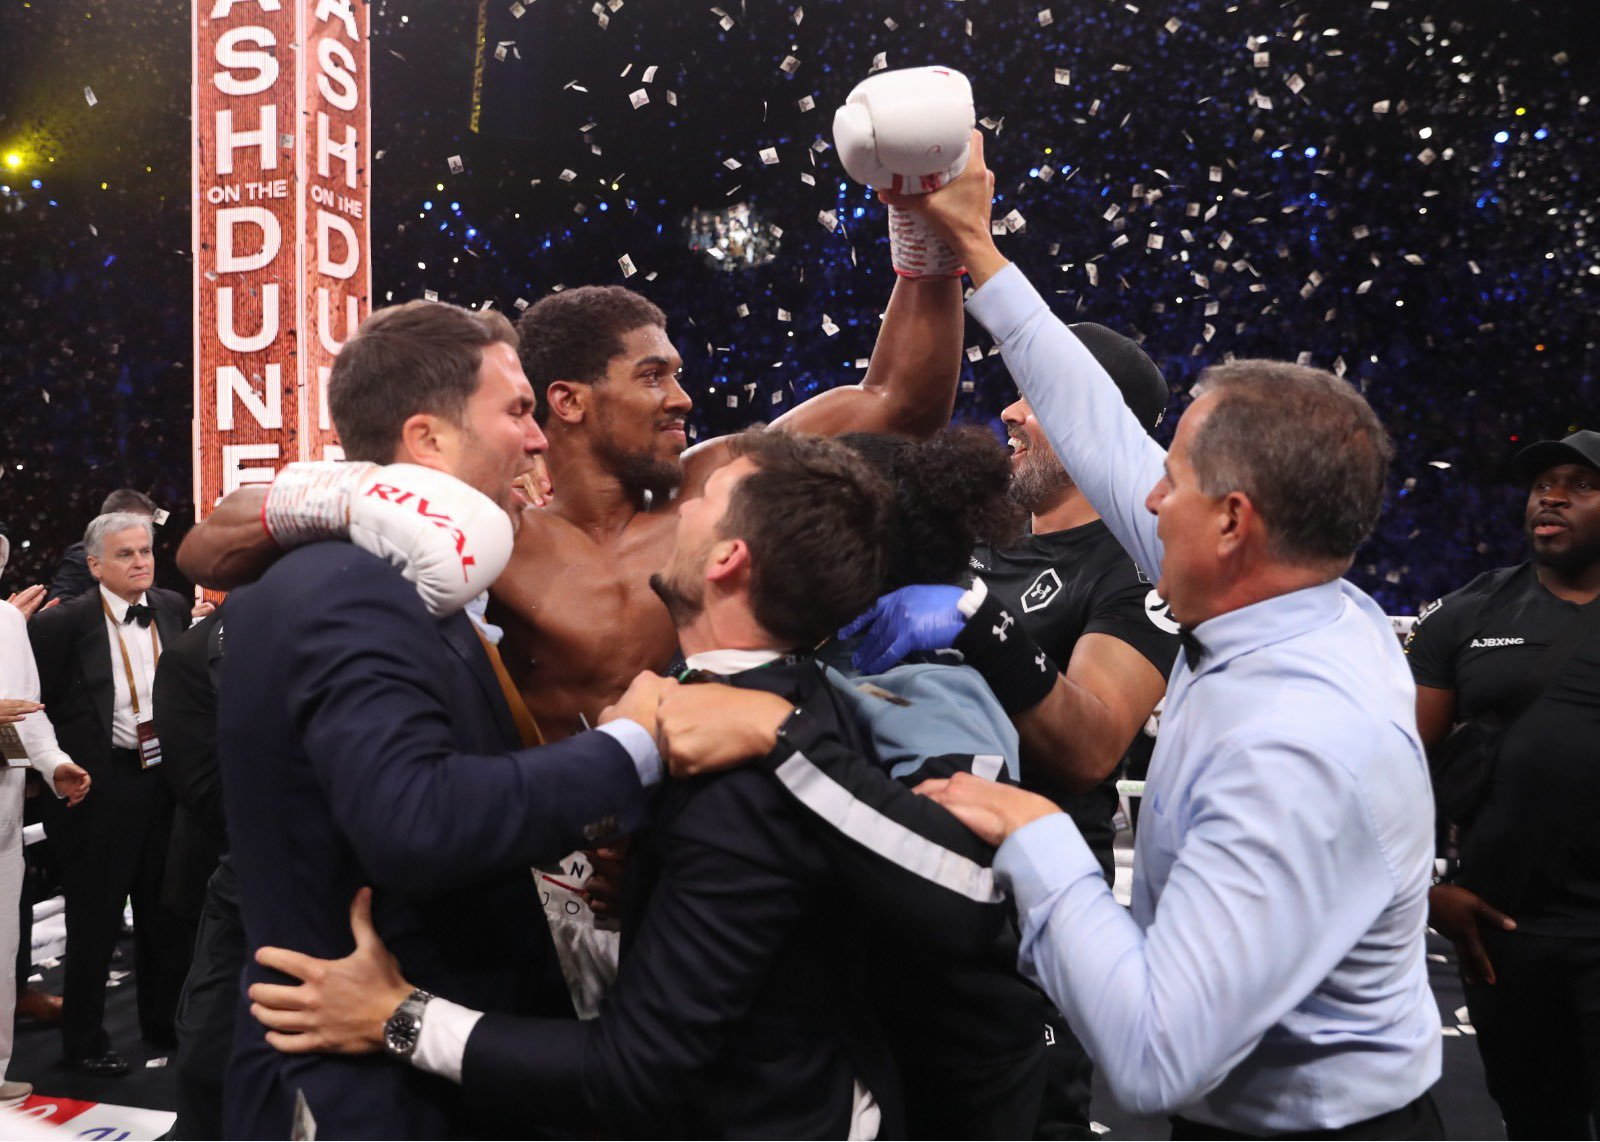 Professional boxer Anthony Joshua celebrating his unanimous decision win over Andy Ruiz Jr.